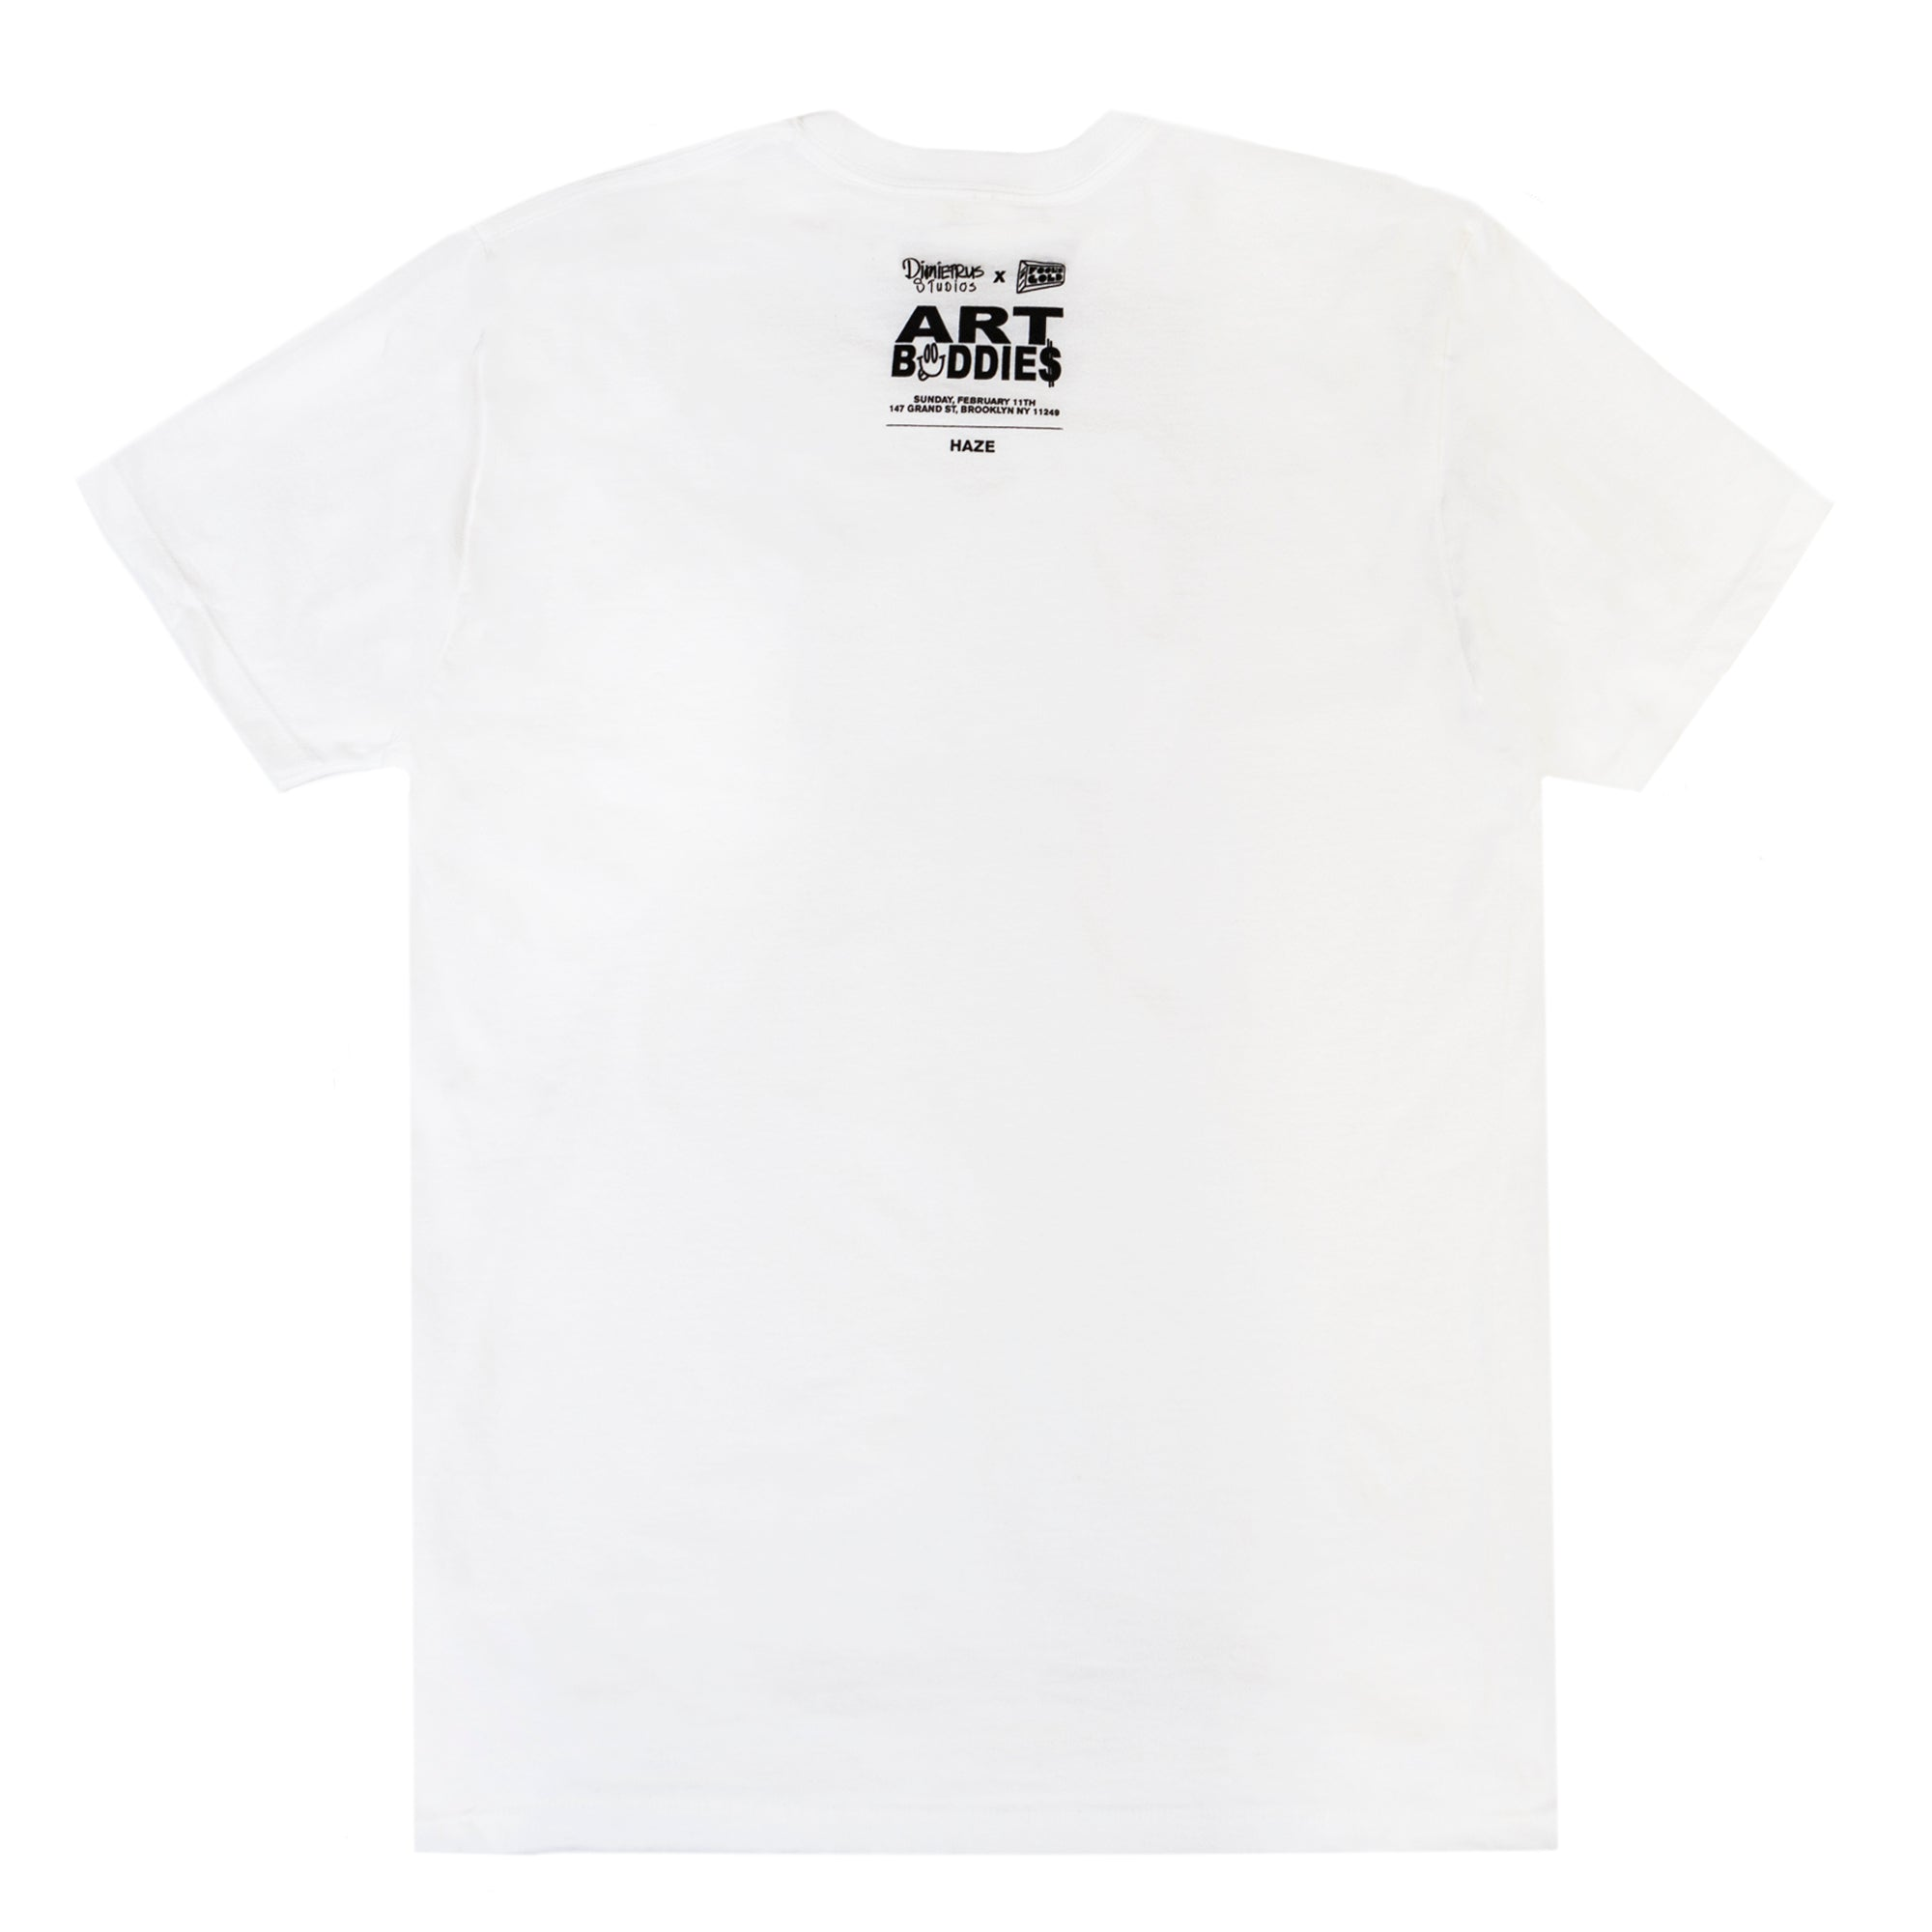 Fool's Gold x HAZE Art Tee